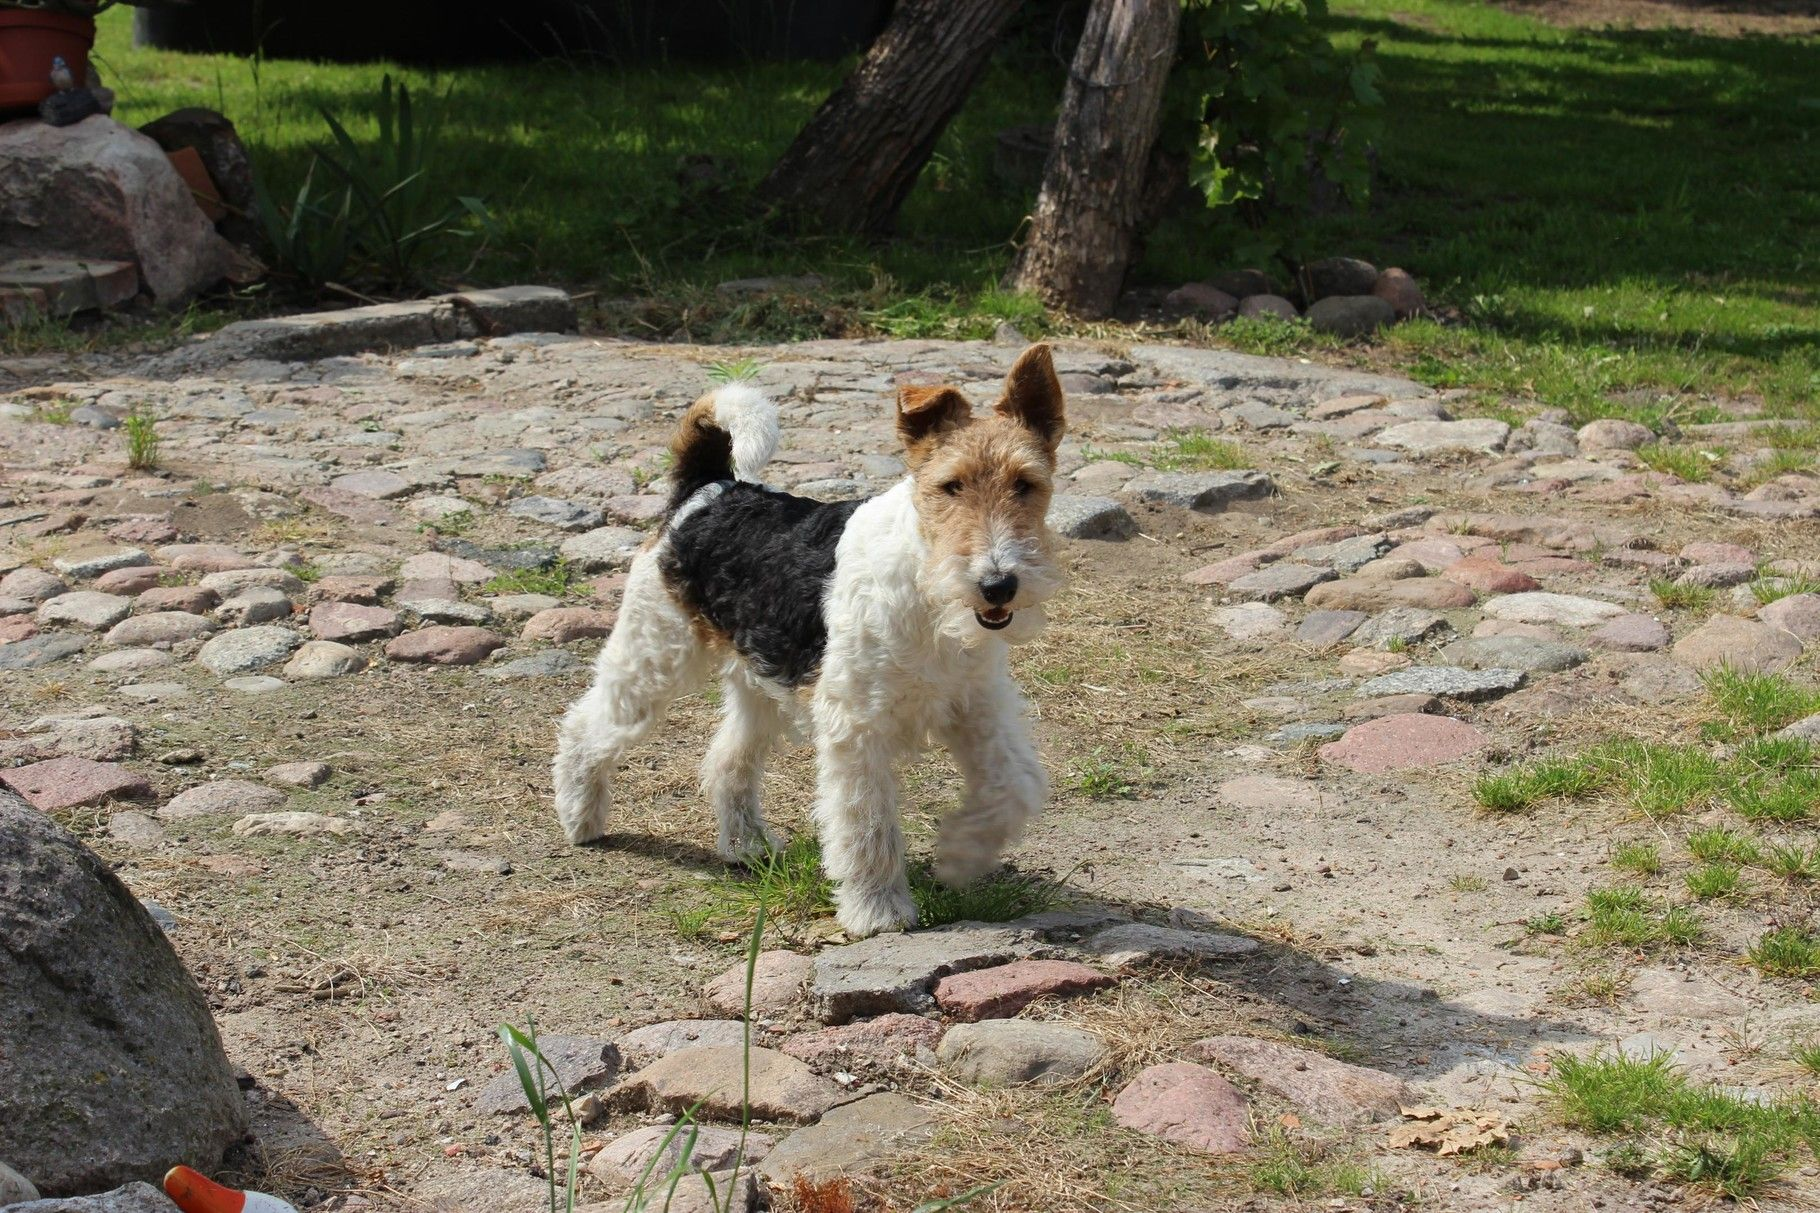 Pin by Heinz Koptmann on Drahthaar Foxterrier aus MOL | Pinterest ...